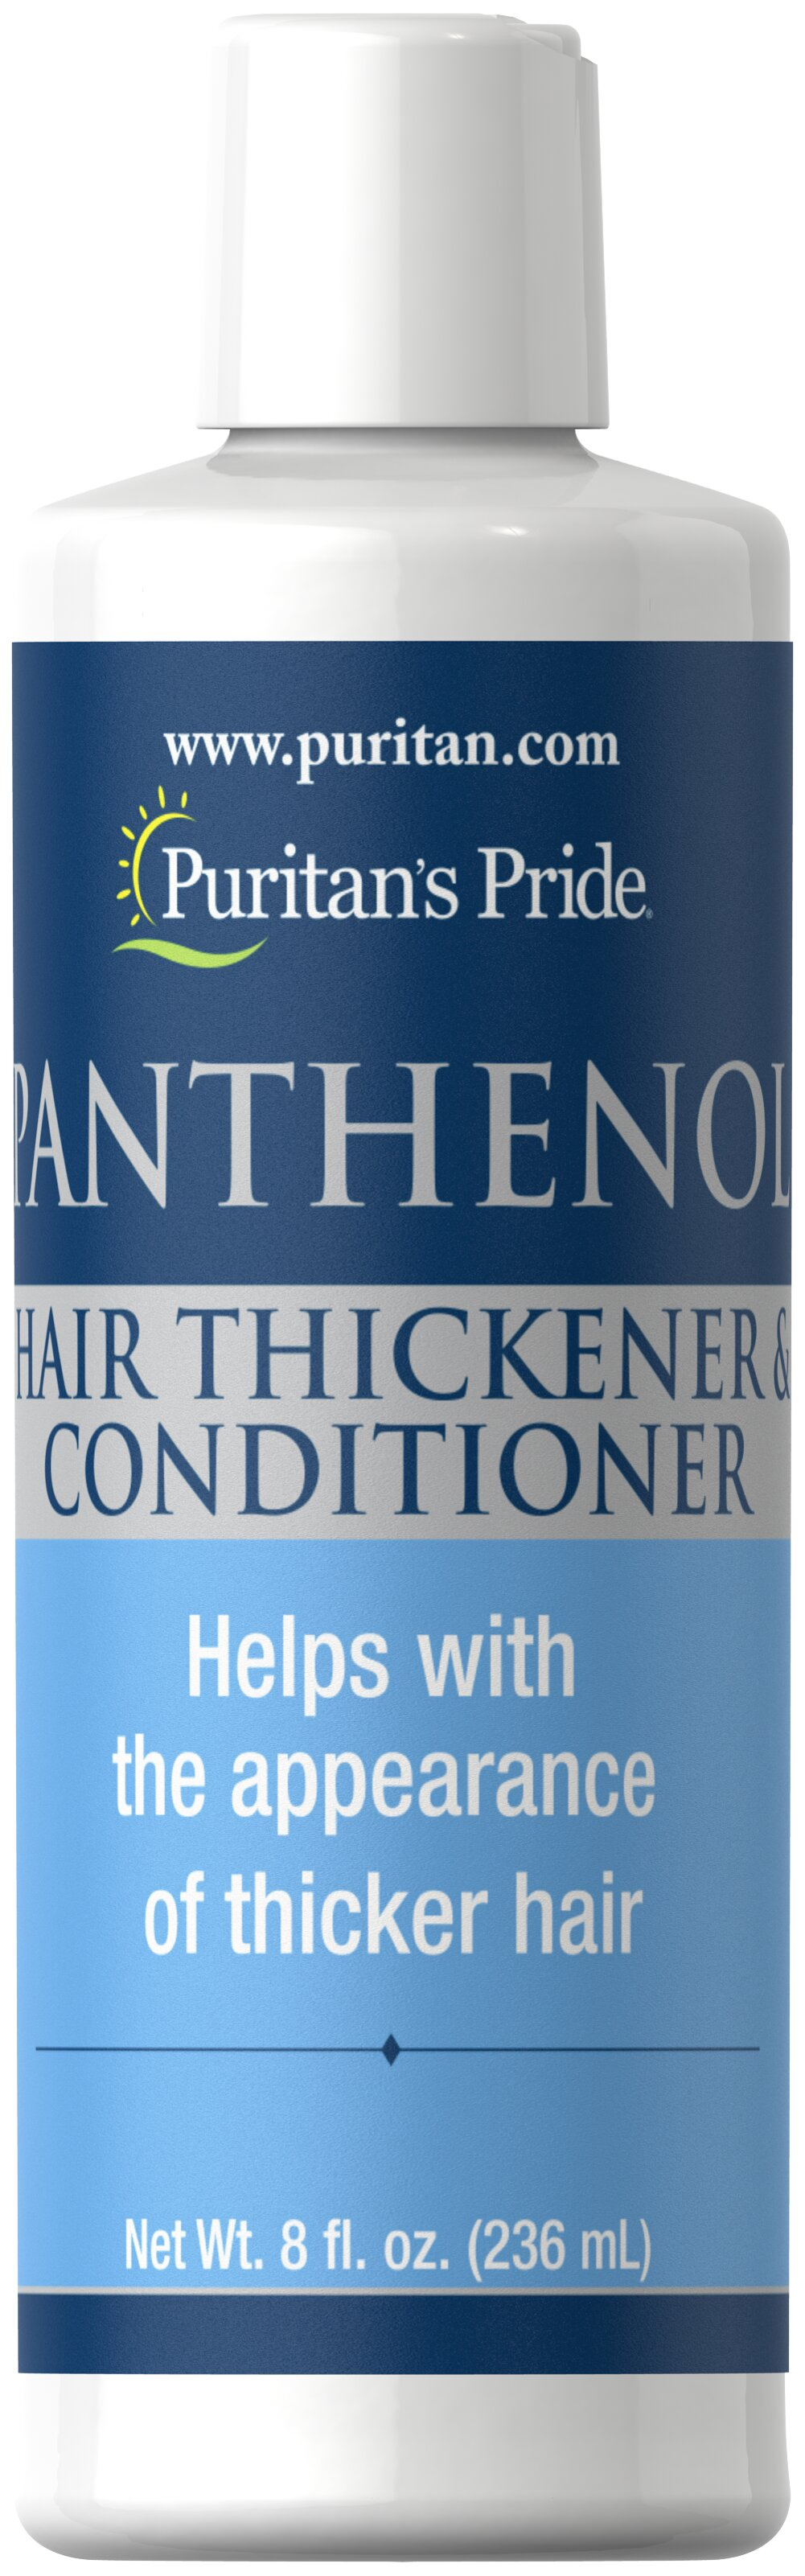 Panthenol Hair Thickener & Conditioner <p>Add New Body to Lifeless Hair</p><p>Pamper your hair with Puritan's Pride Hair Thickener & Conditioner. After continuous use, your hair will have more body, feel stronger, and look healthier. Panthenol revitalizes your hair as it penetrates each hair shaft, and can make a dramatic difference in the look and feel of your hair.</p> 8 fl oz Conditioner  $9.29